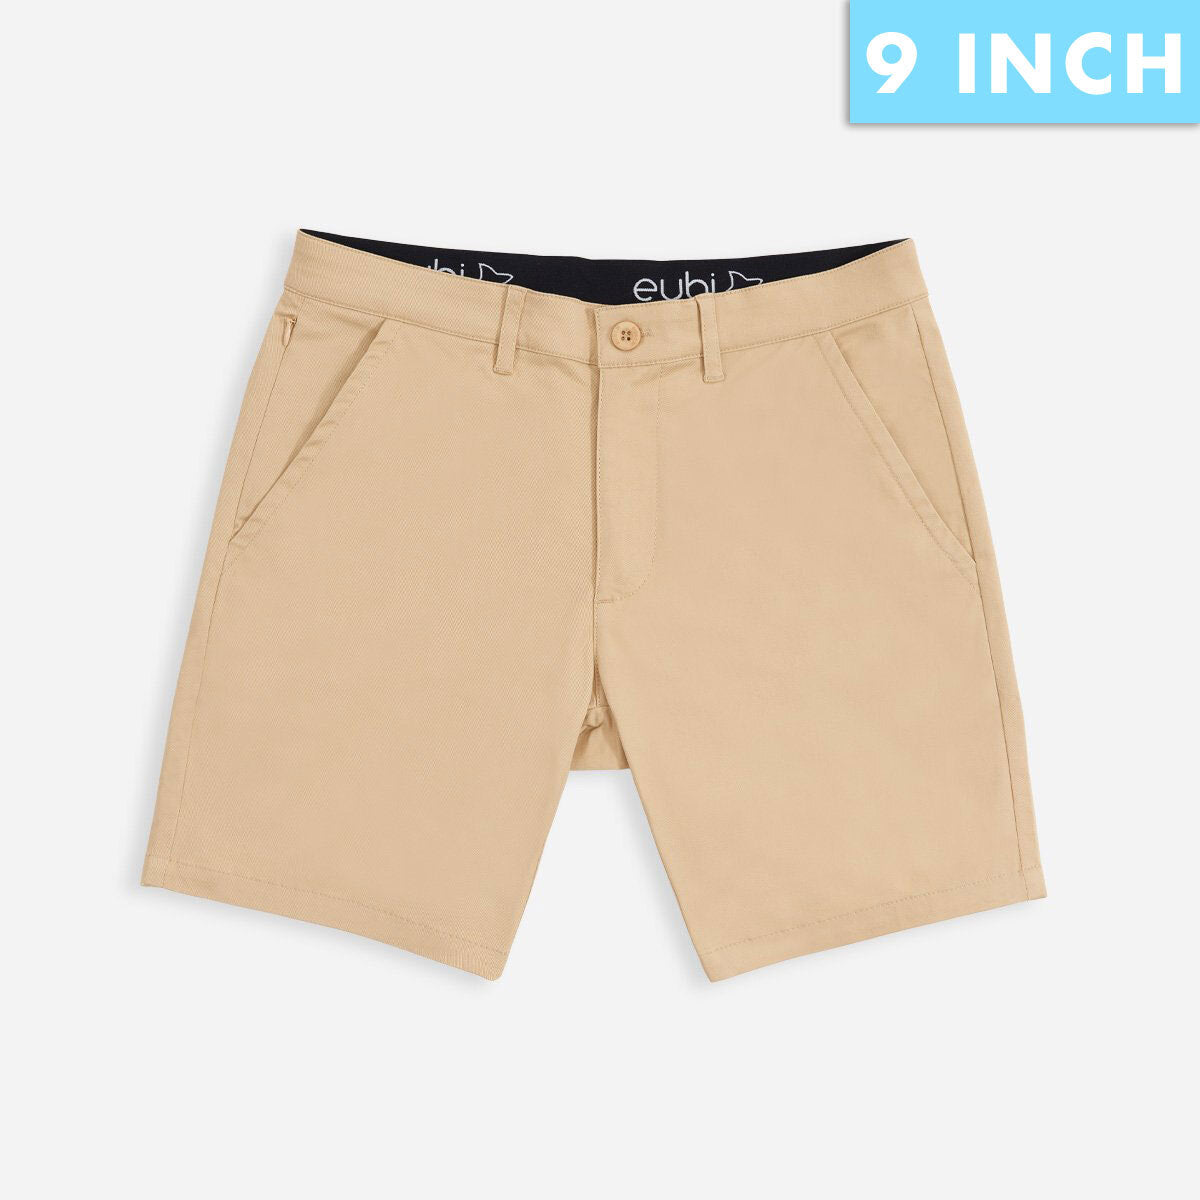 "9"" Khaki Brown All Day Shorts 3.0 (Stretch)"